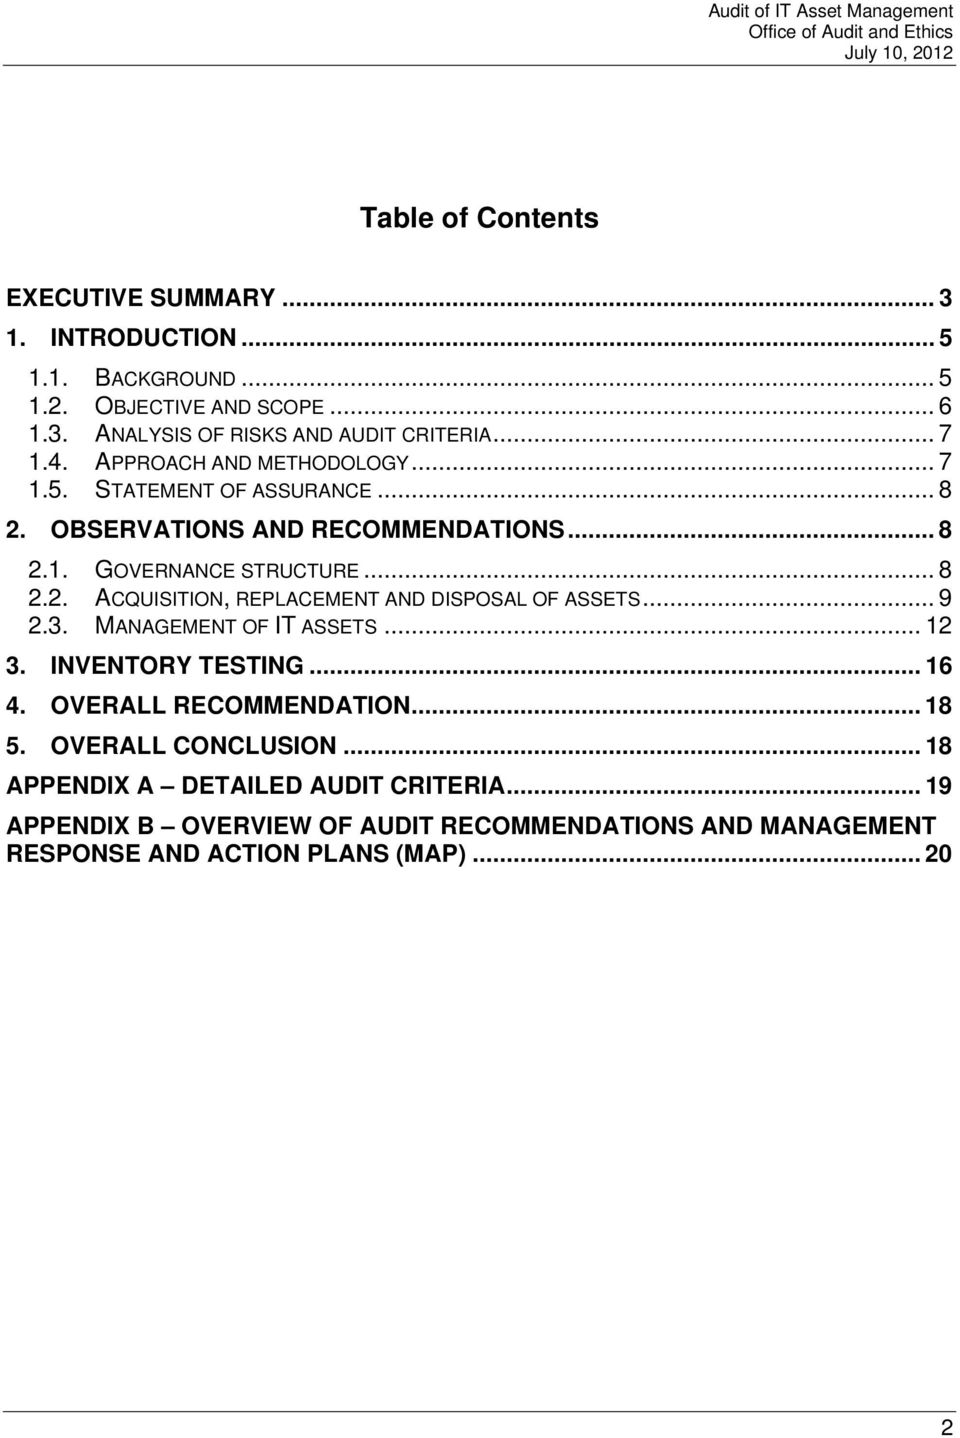 .. 9 2.3. MANAGEMENT OF IT ASSETS... 12 3. INVENTORY TESTING... 16 4. OVERALL RECOMMENDATION... 18 5. OVERALL CONCLUSION.